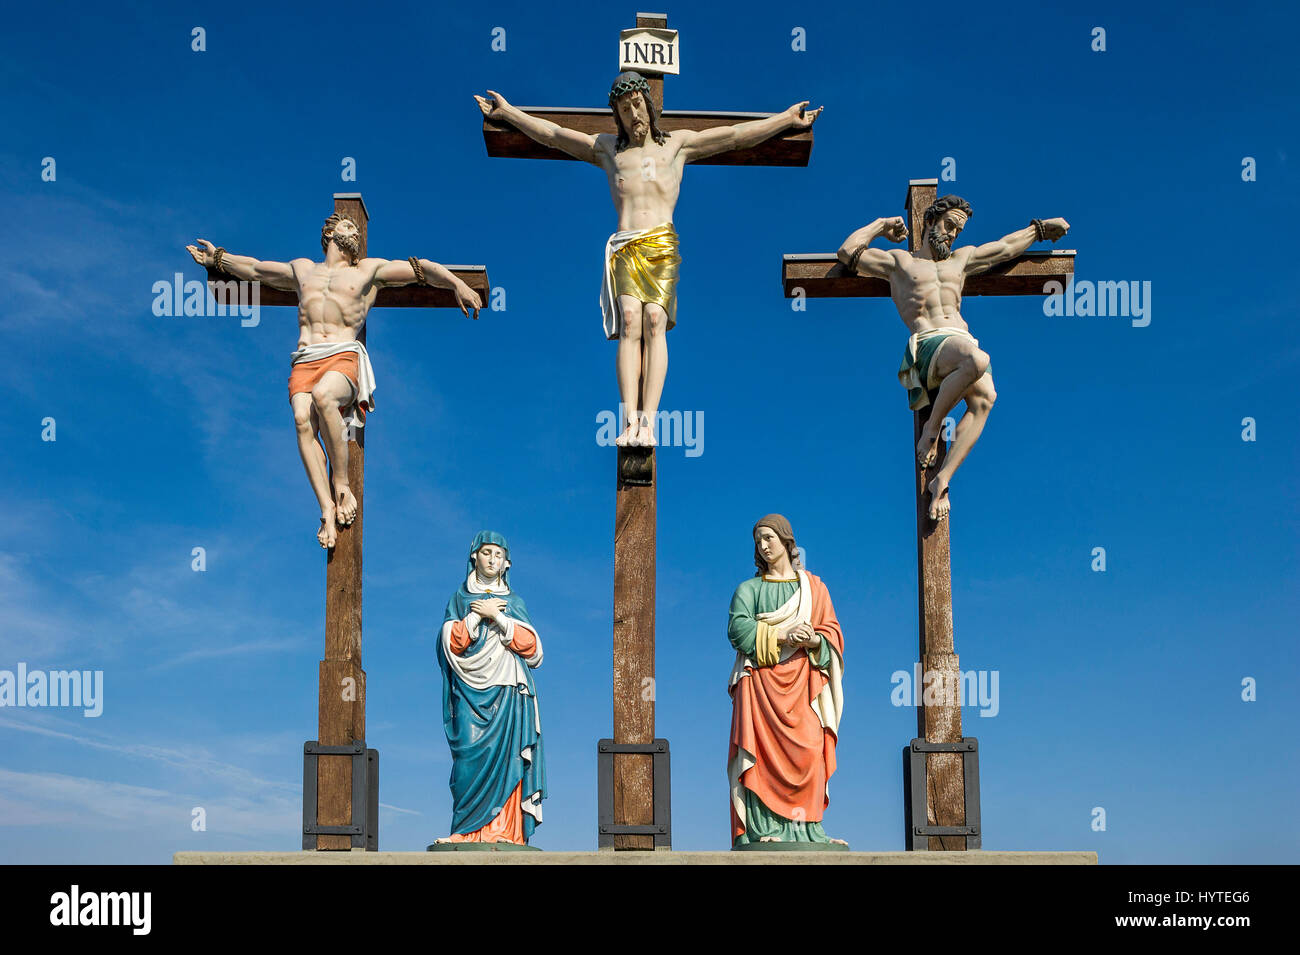 Crucifixion of Jesus, Jesus and two thieves, St. Anne and Mary, Calvary, Klosterlechfeld, Swabia, Bavaria, Germany - Stock Image